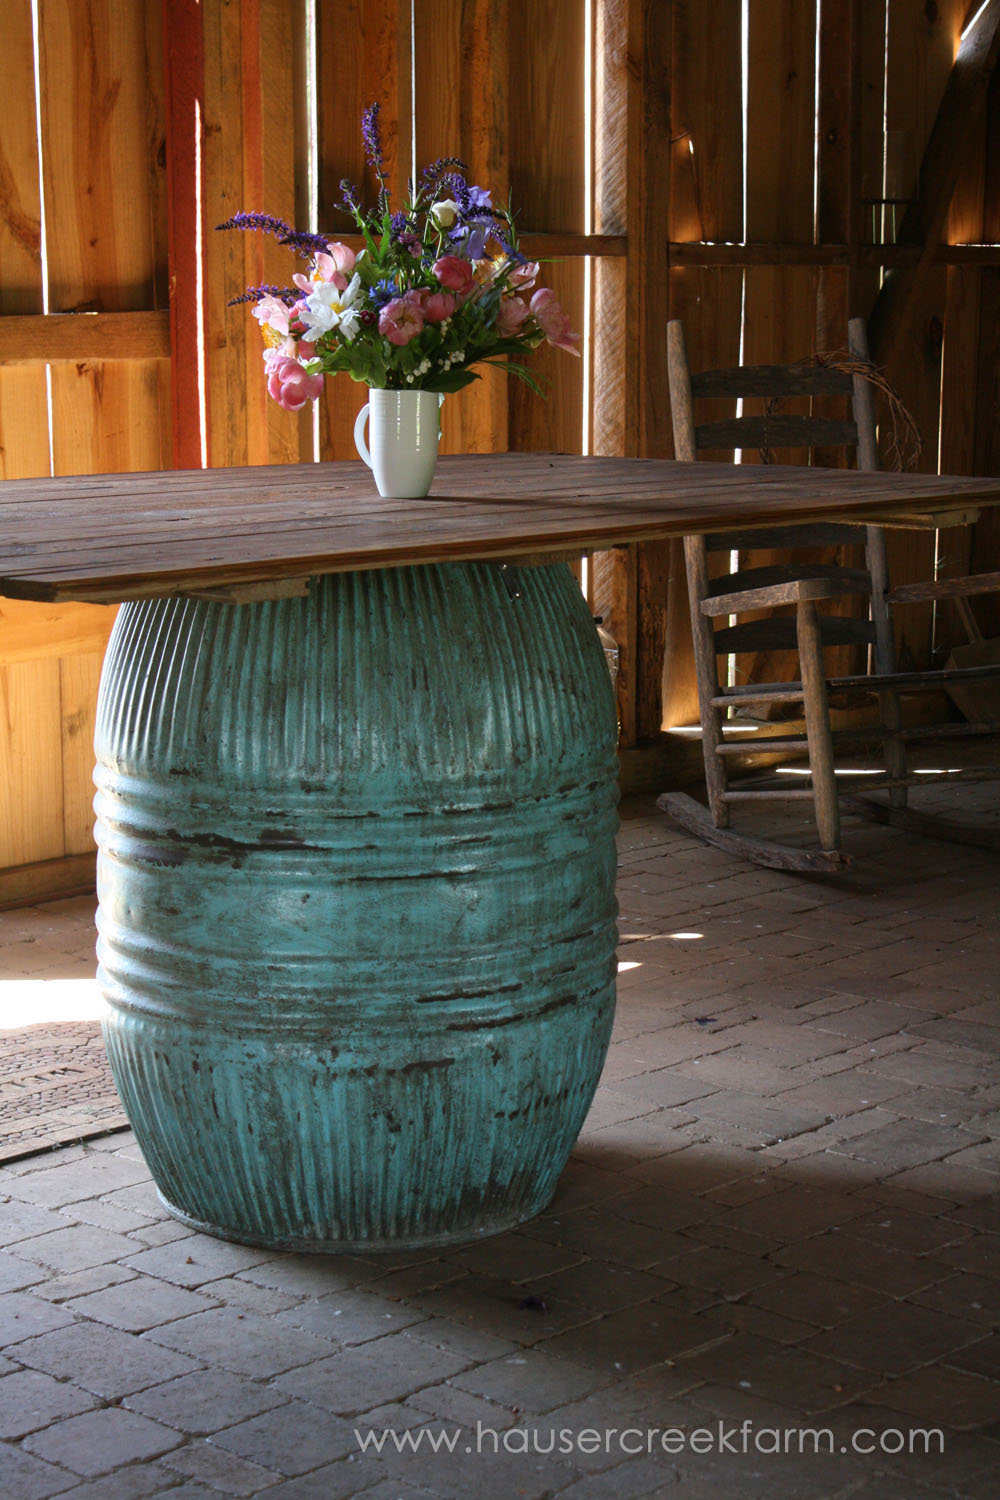 flowers-in-cup-on-barrel-table-hauser-creek-farm-photo-by-annie-segal-4355.jpg